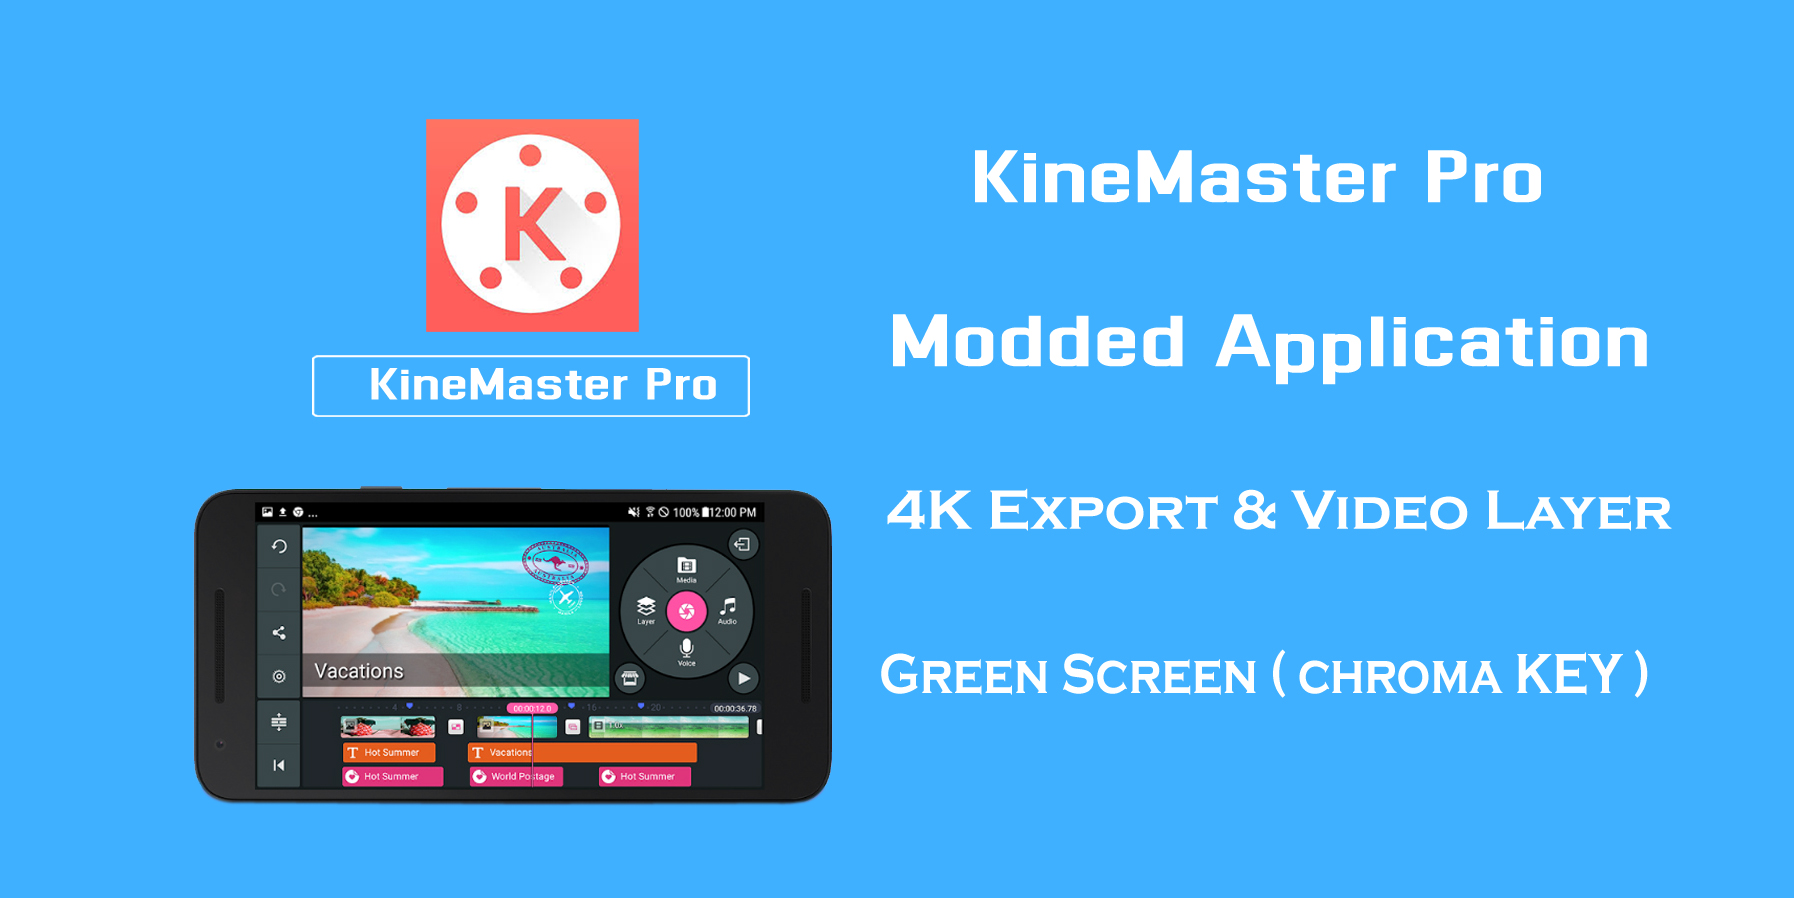 Modded KineMaster Pro Apk App Free Download - MAHI TECH INFO